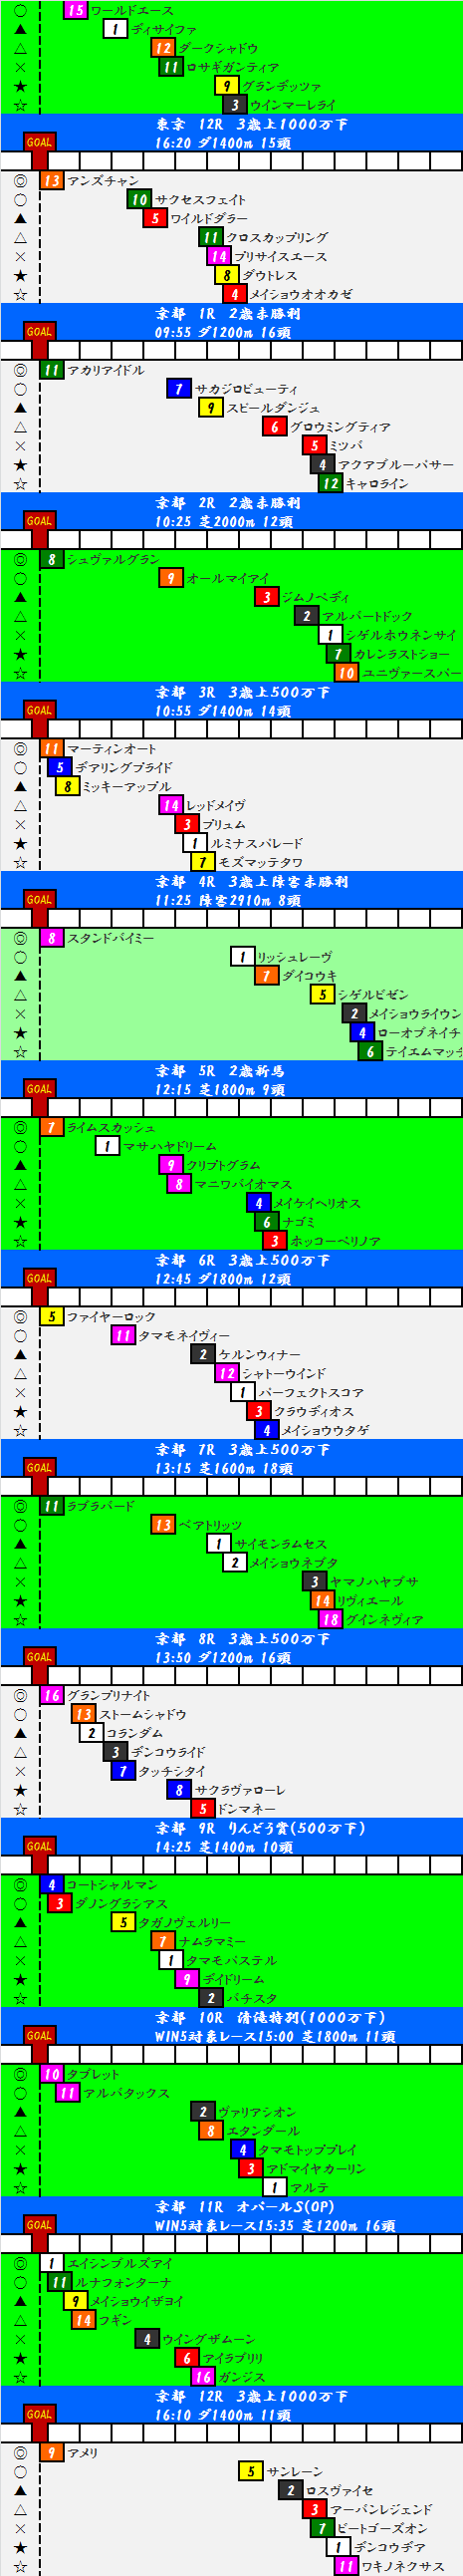 2014101202.png